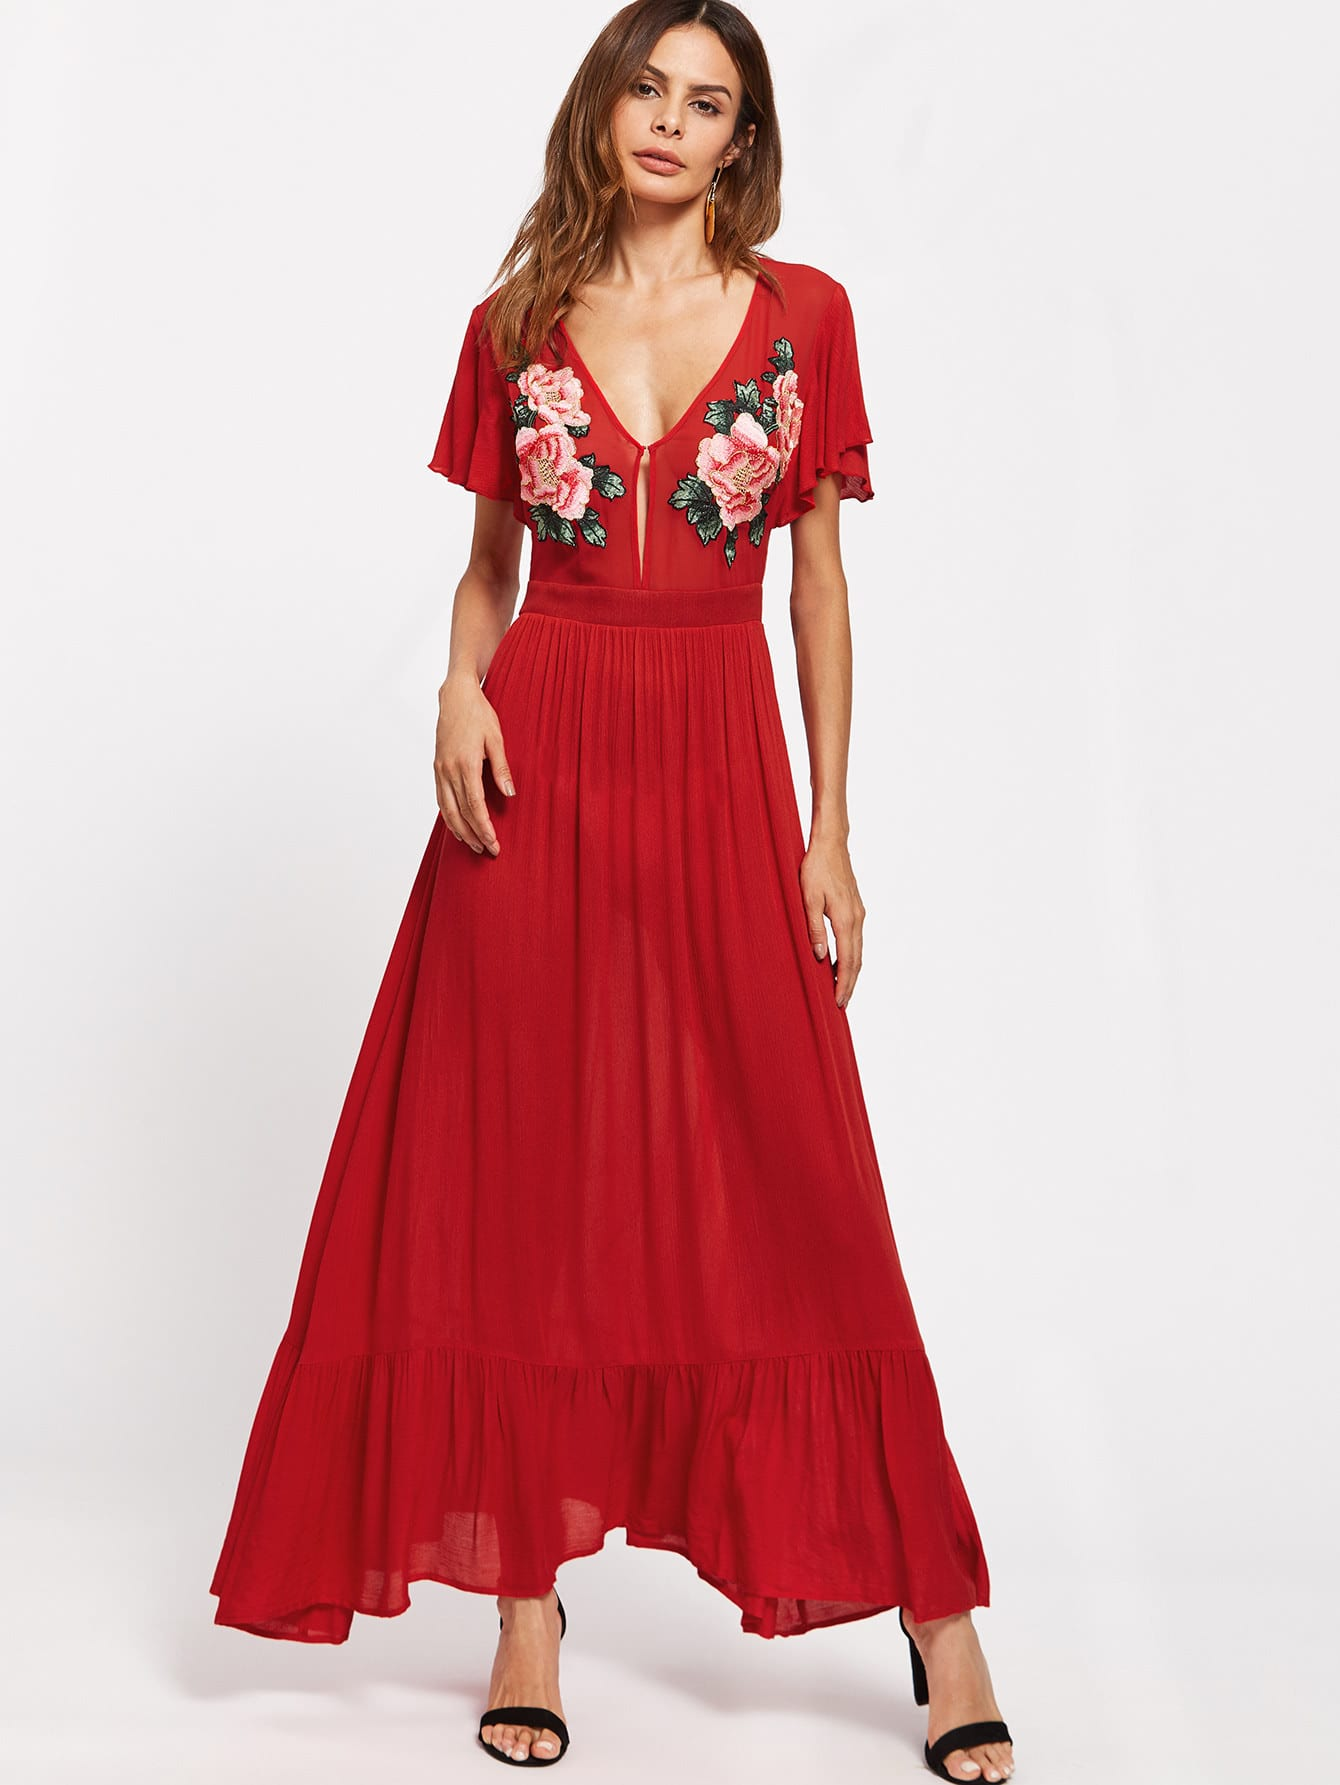 Symmetrical Embroidery Patch Flutter Sleeve Ruffle Hem Dress embroidered sequin patch ruffle hem dress page 6